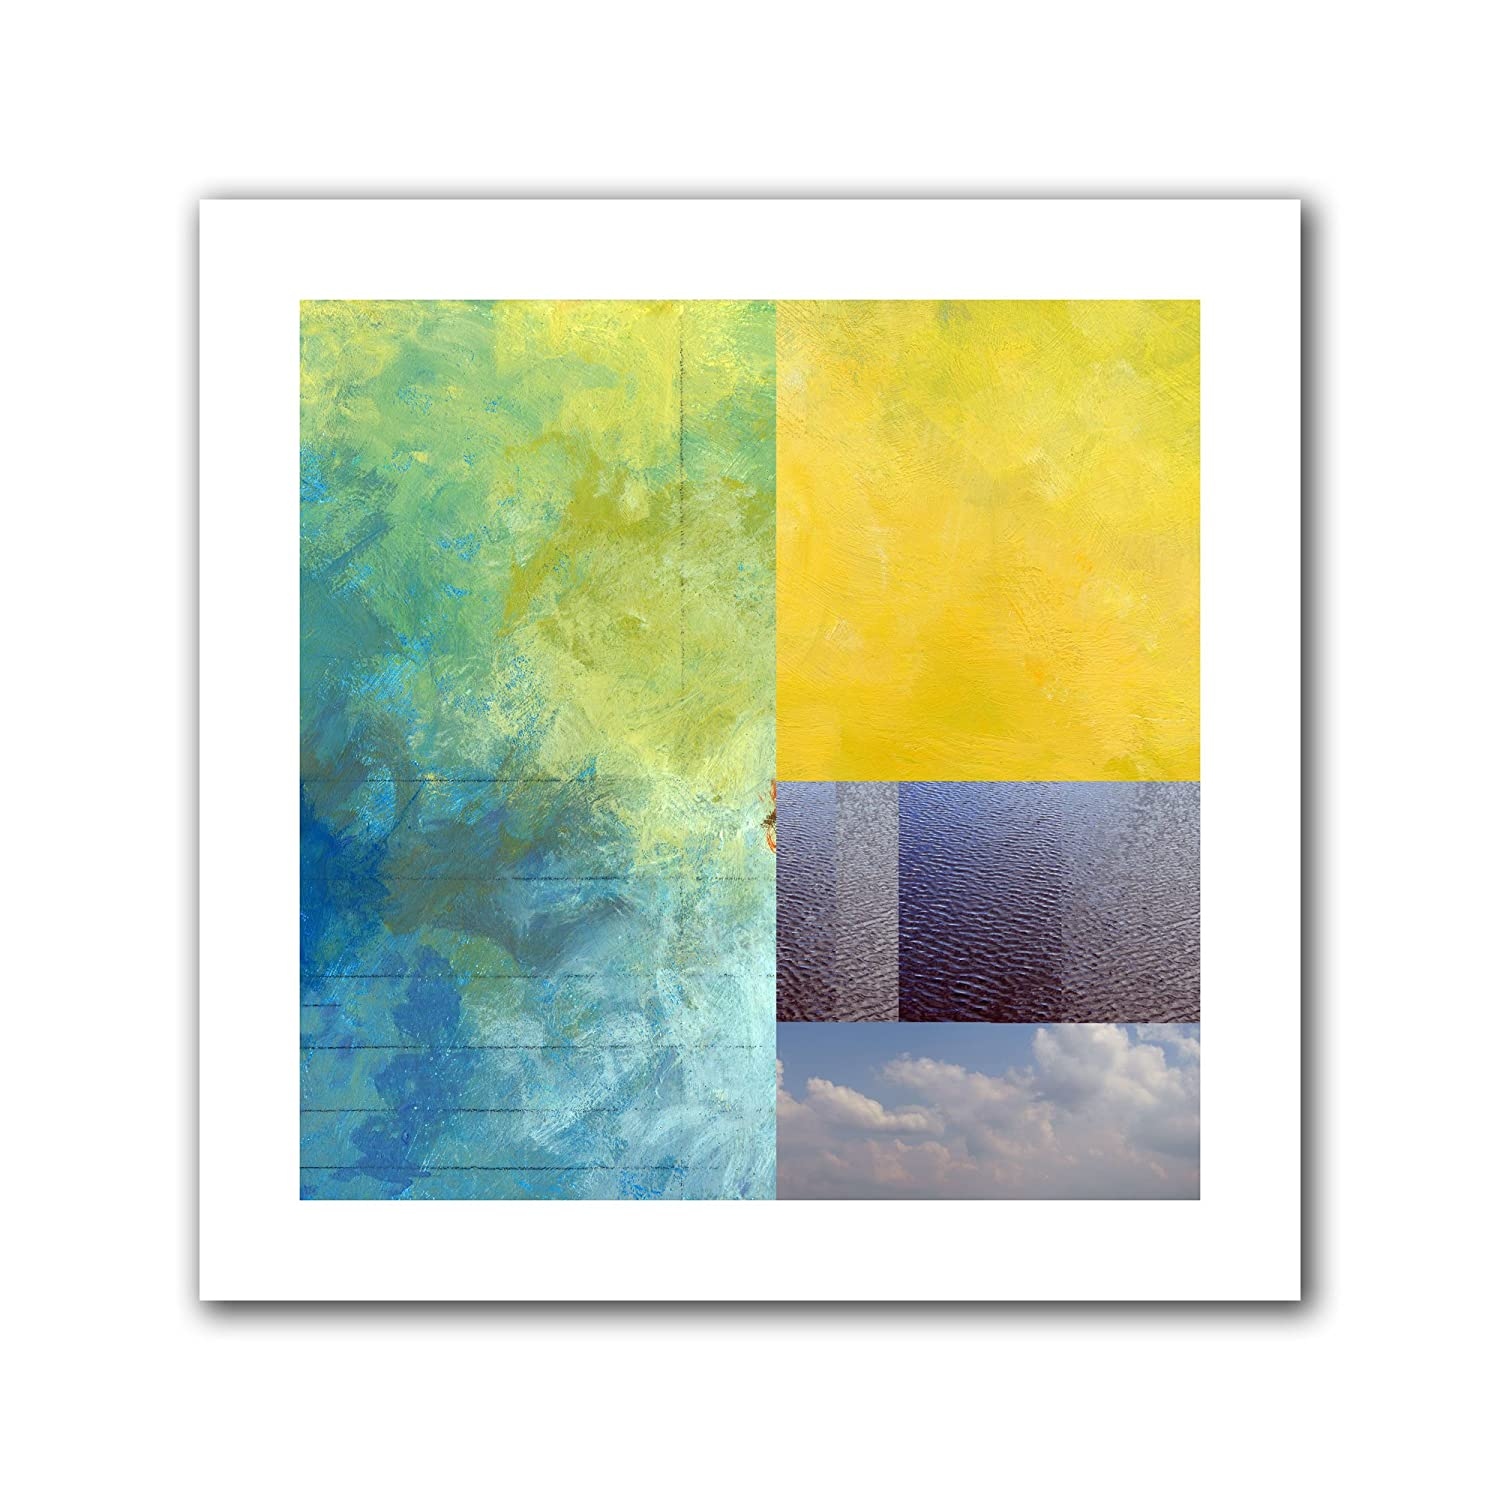 18 by 18-Inch ArtWall Earth Textures Squares I Unwrapped Canvas Art by Jan Weiss